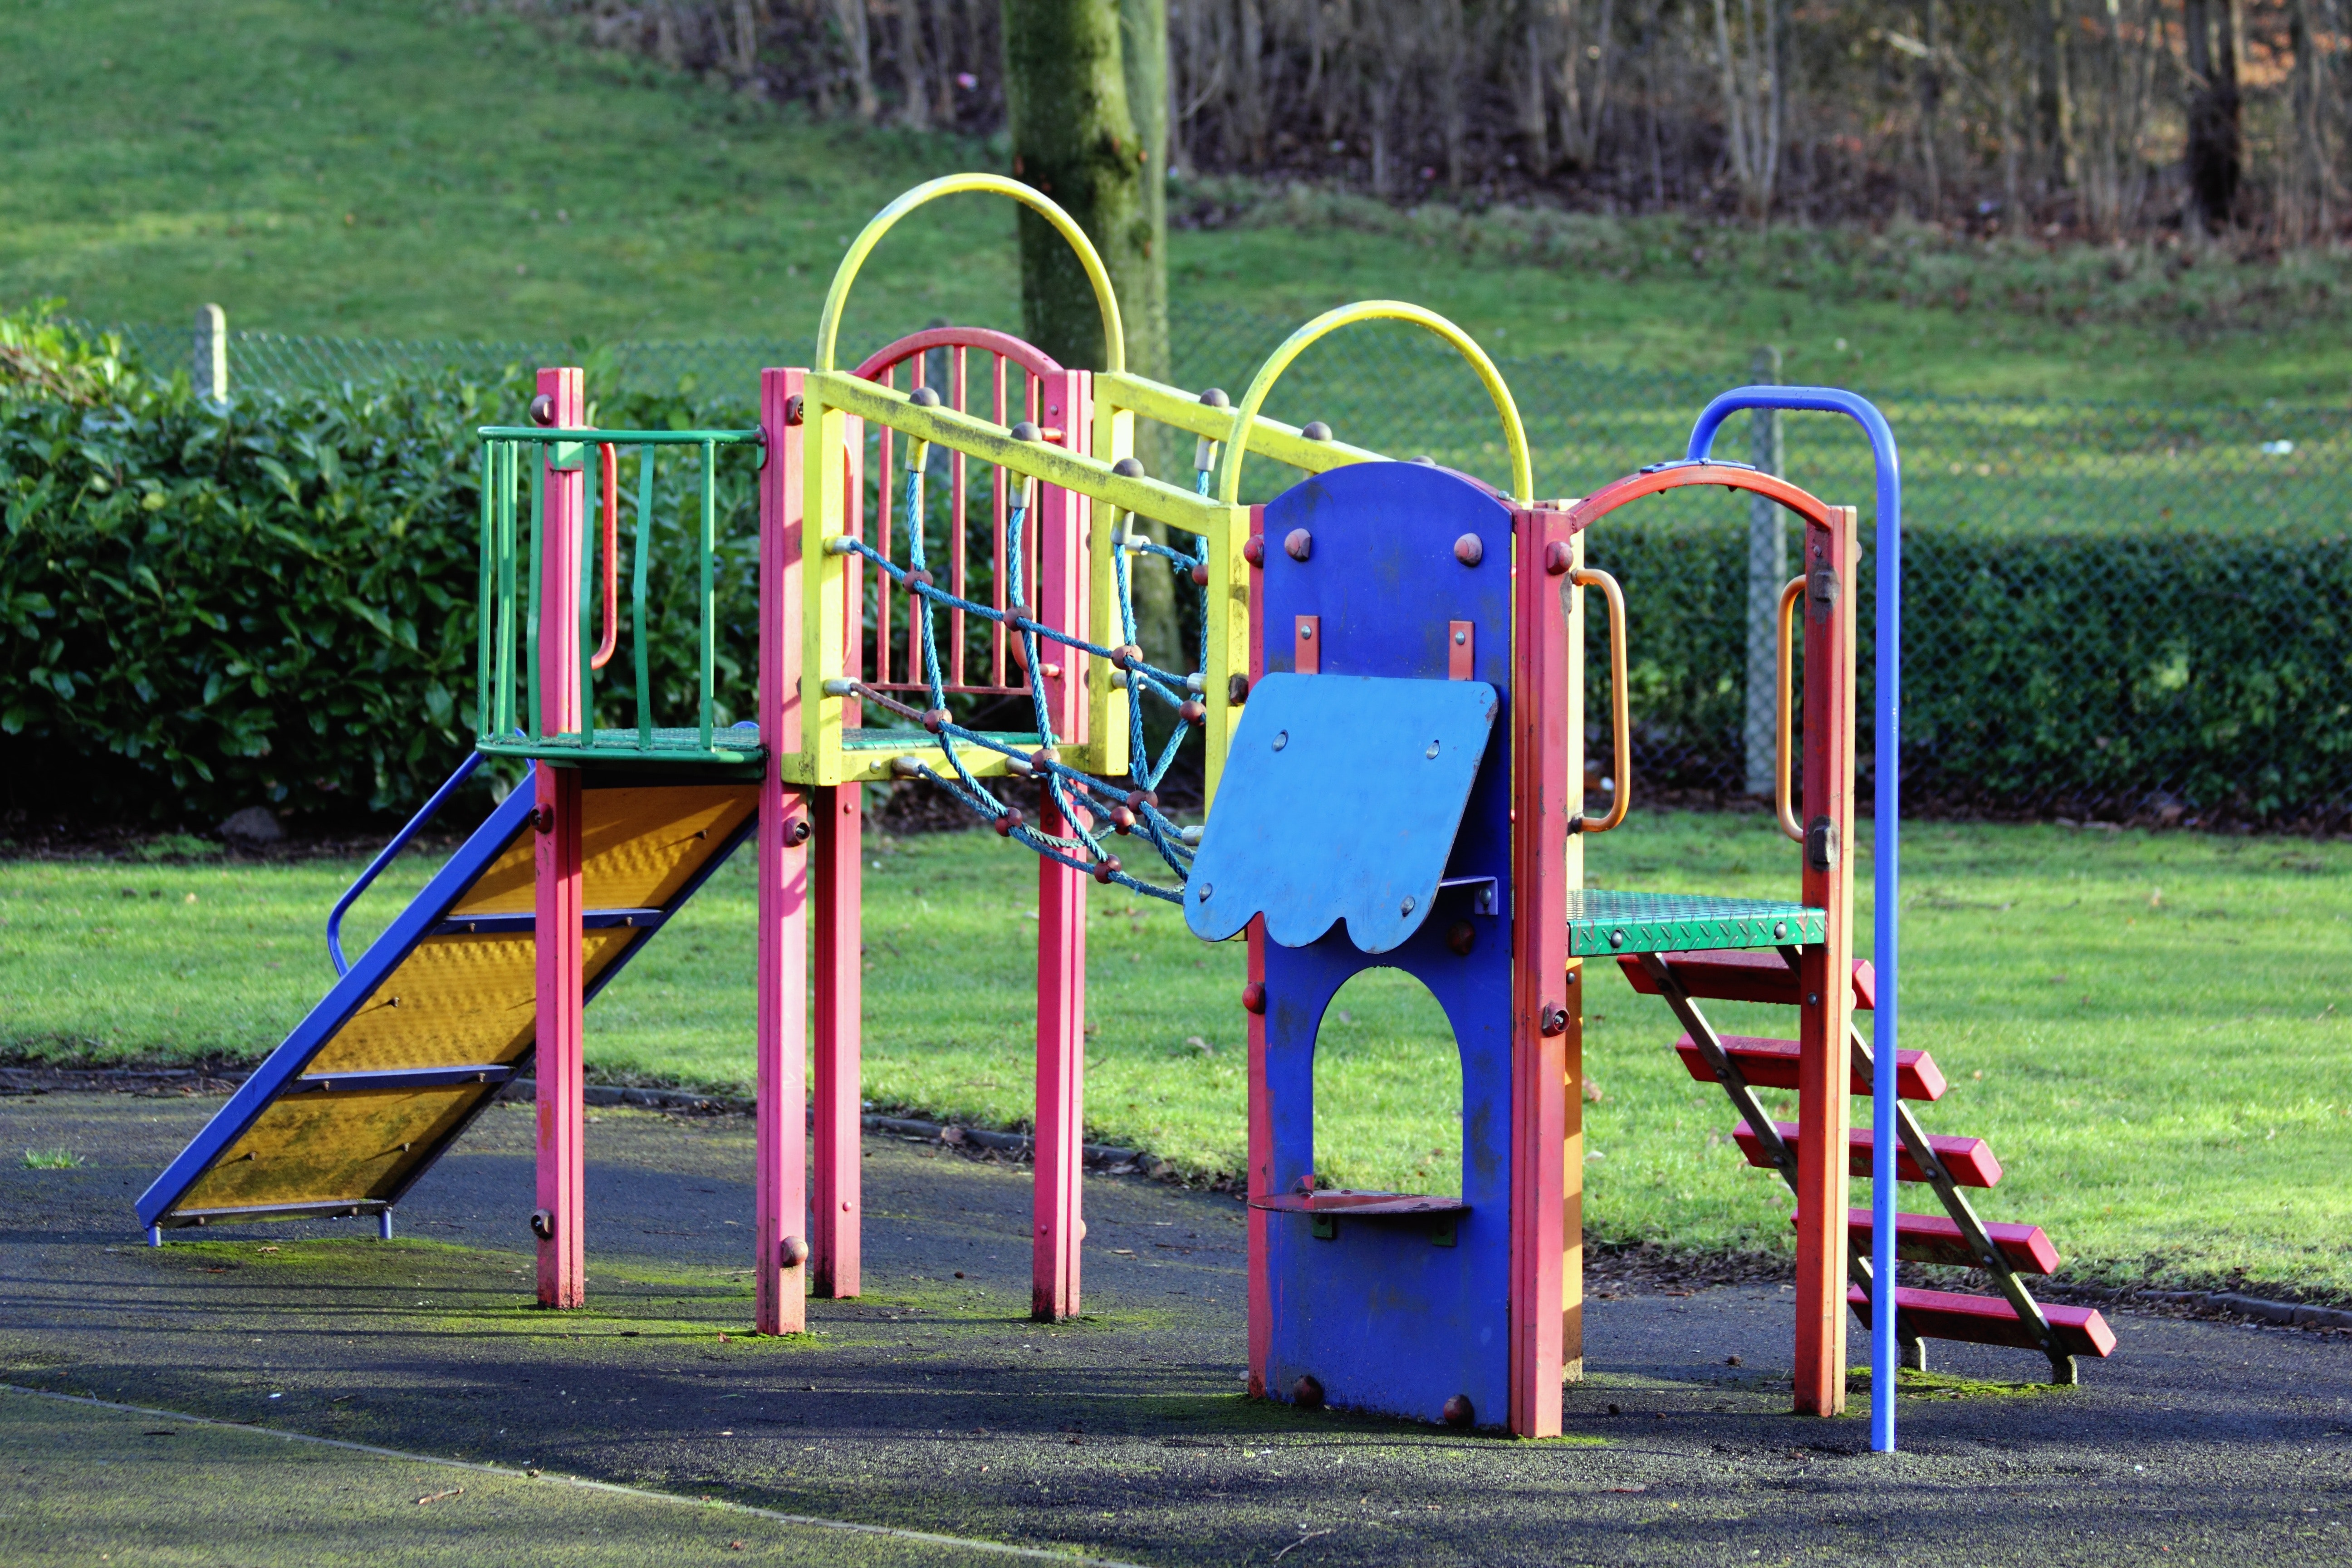 Parks & Playgrounds in Flower Mound, TX